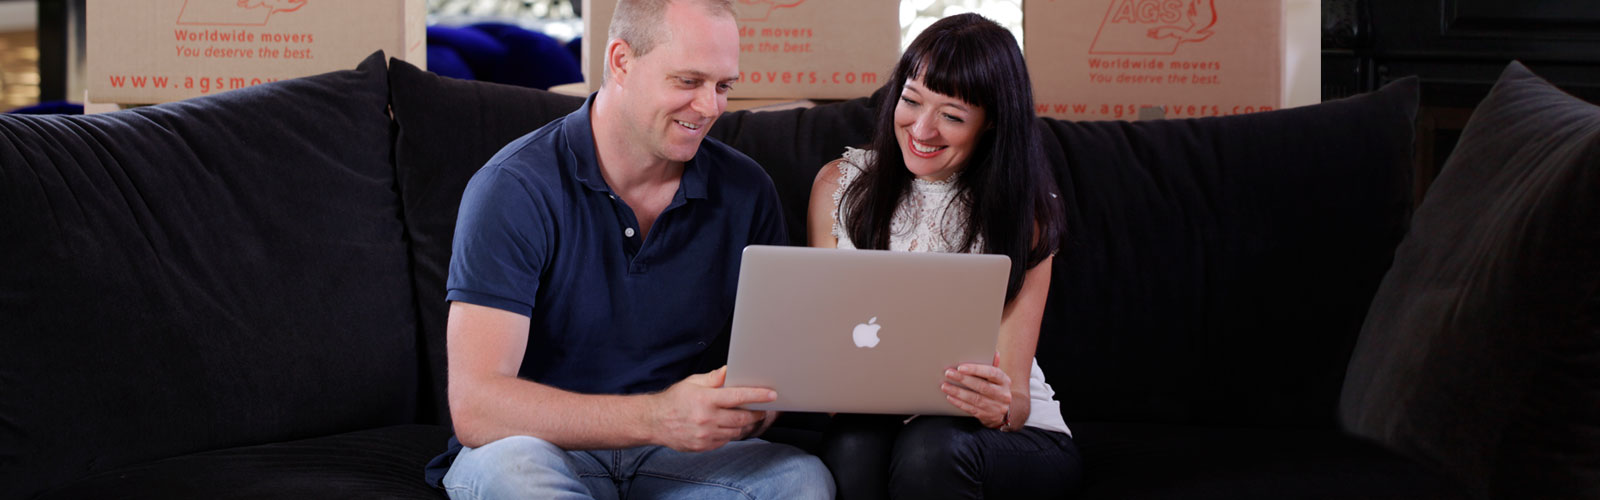 couple-browsing-online